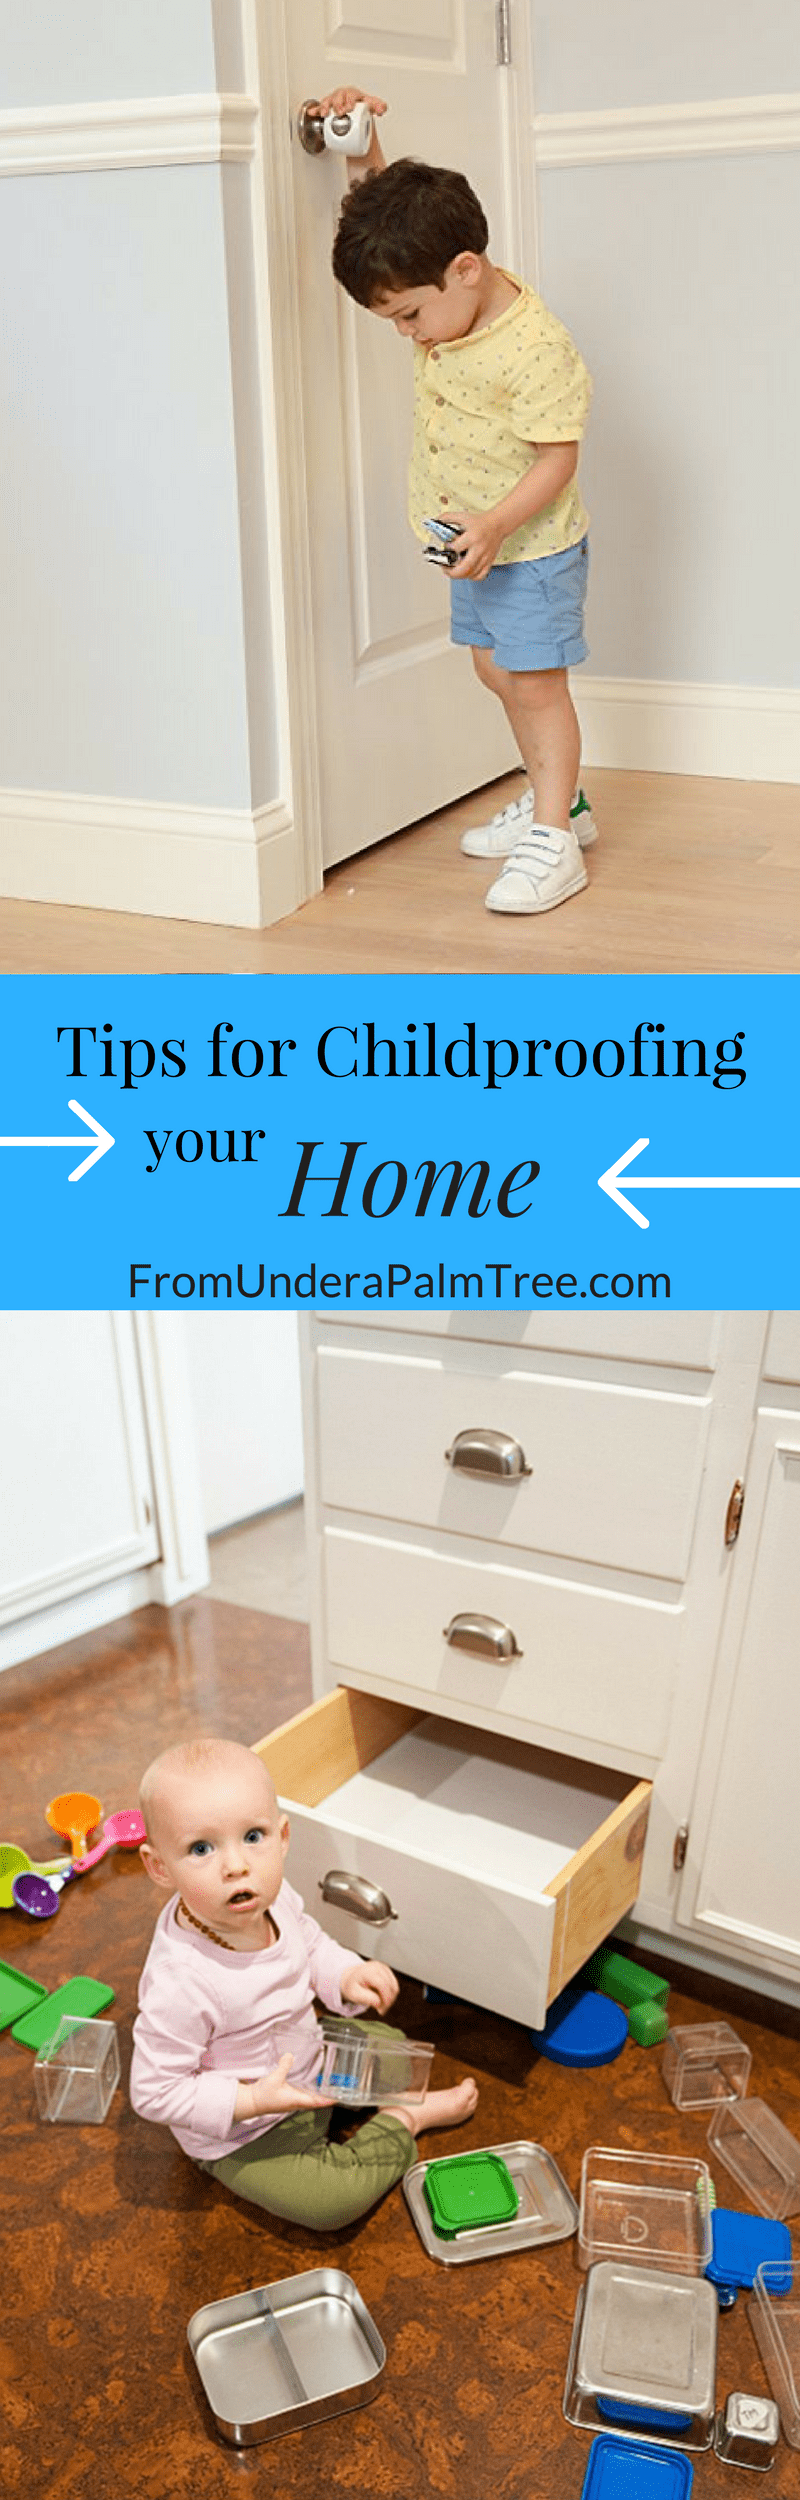 childproofing | tips for childproofing | baby proofing | tips for baby proofing | baby proof | childproof | safety | kids safety | how to keep your kids safe at home | childproofing your home | childproofing tips | childproofing your kitchen | childproofing your kids room | anchoring furniture | how to baby proof your home | how to baby proof | how to childproof | how to anchor furniture | magnetic door locks for cabinets |